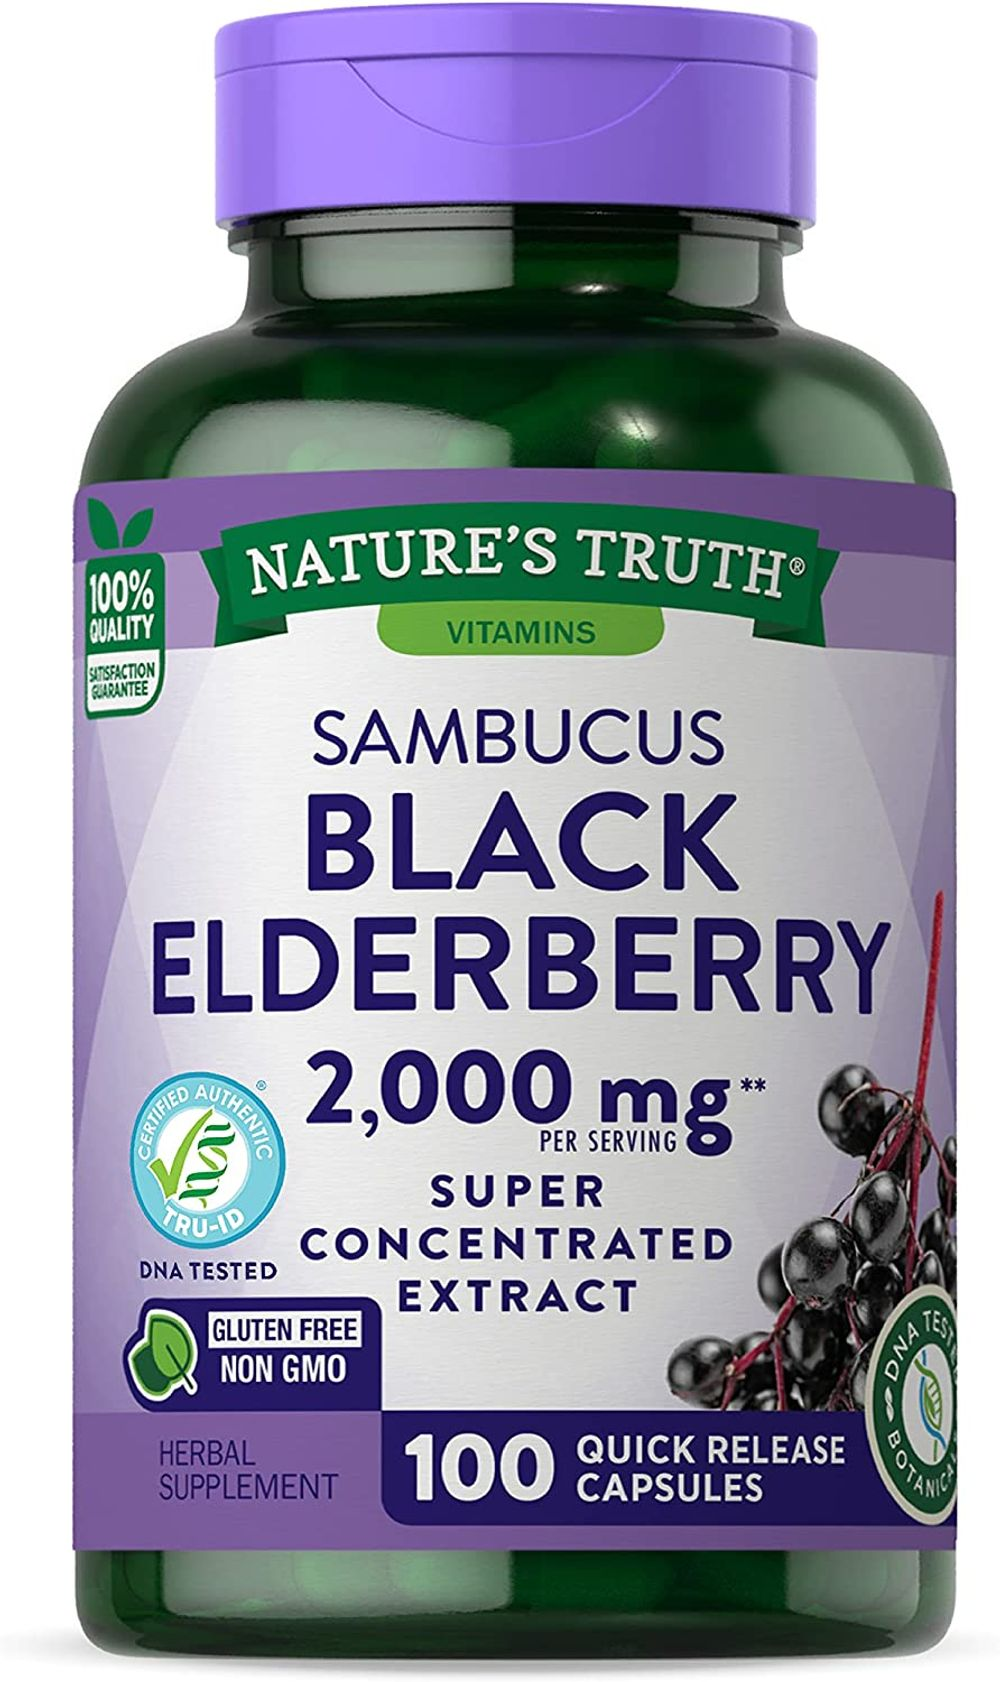 Nature's TruthBlack Elderberry Capsules 1000mg | 100 Count | Super Concentrated Sambucus Extract | Non-GMO, Gluten Free | by Nature's Truth, 100 Count